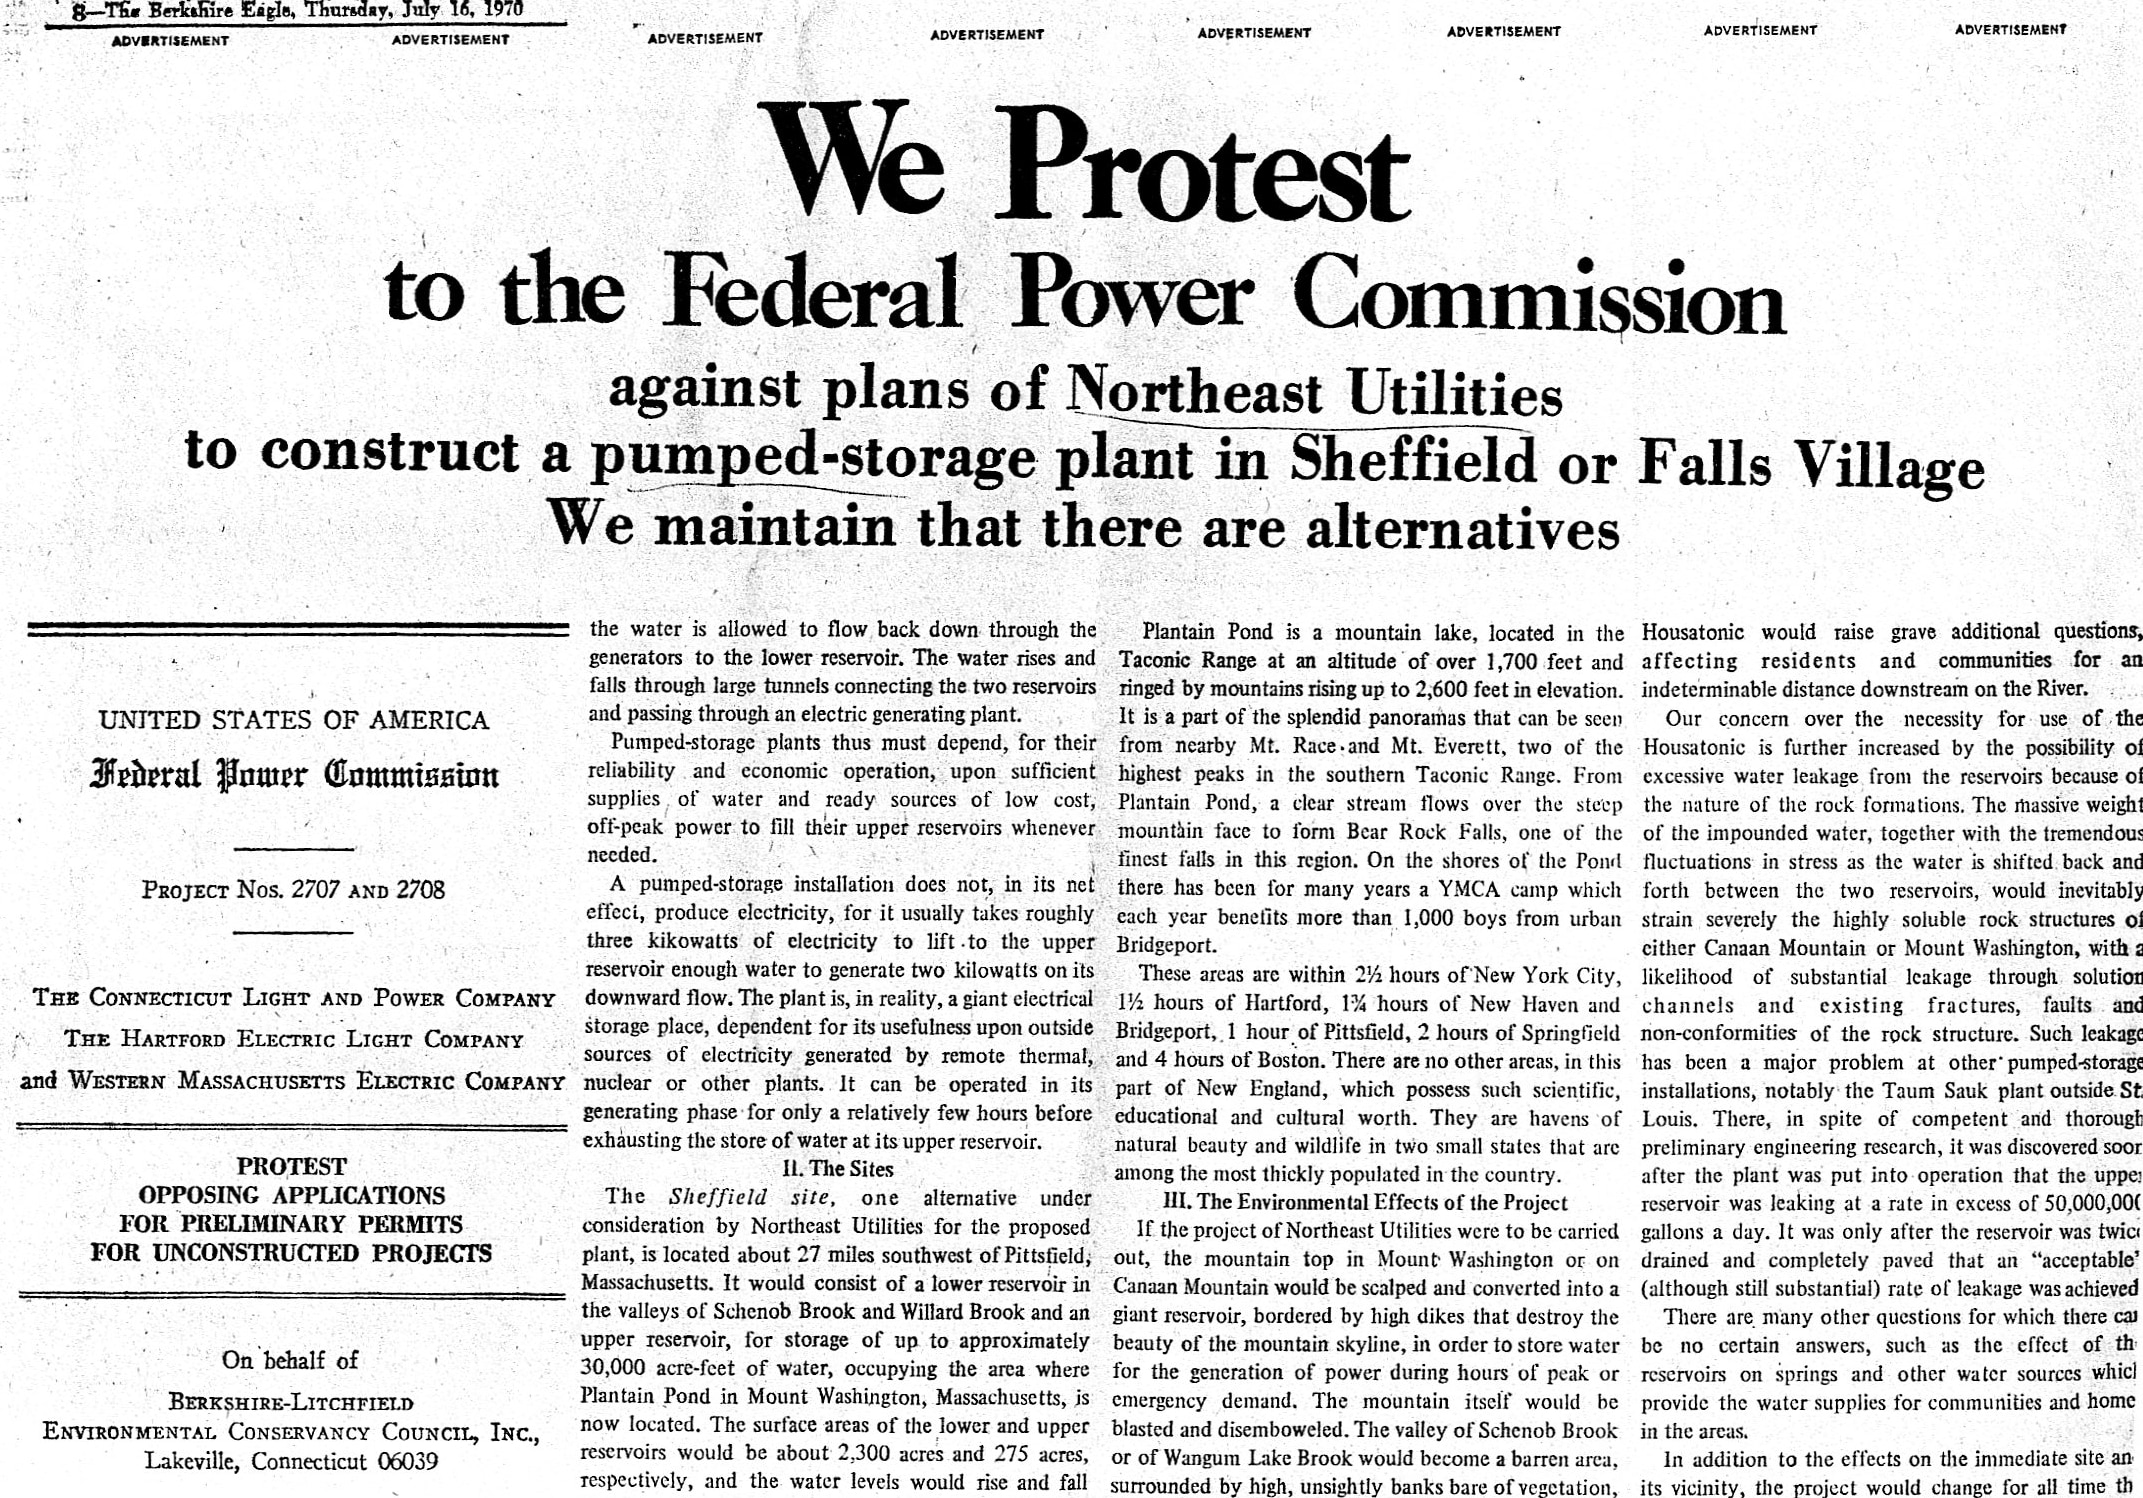 An advertisement proclaiming the opposition of the Berkshire-Litchfield Environmental Conservancy Council to the Northeast Utilities project.